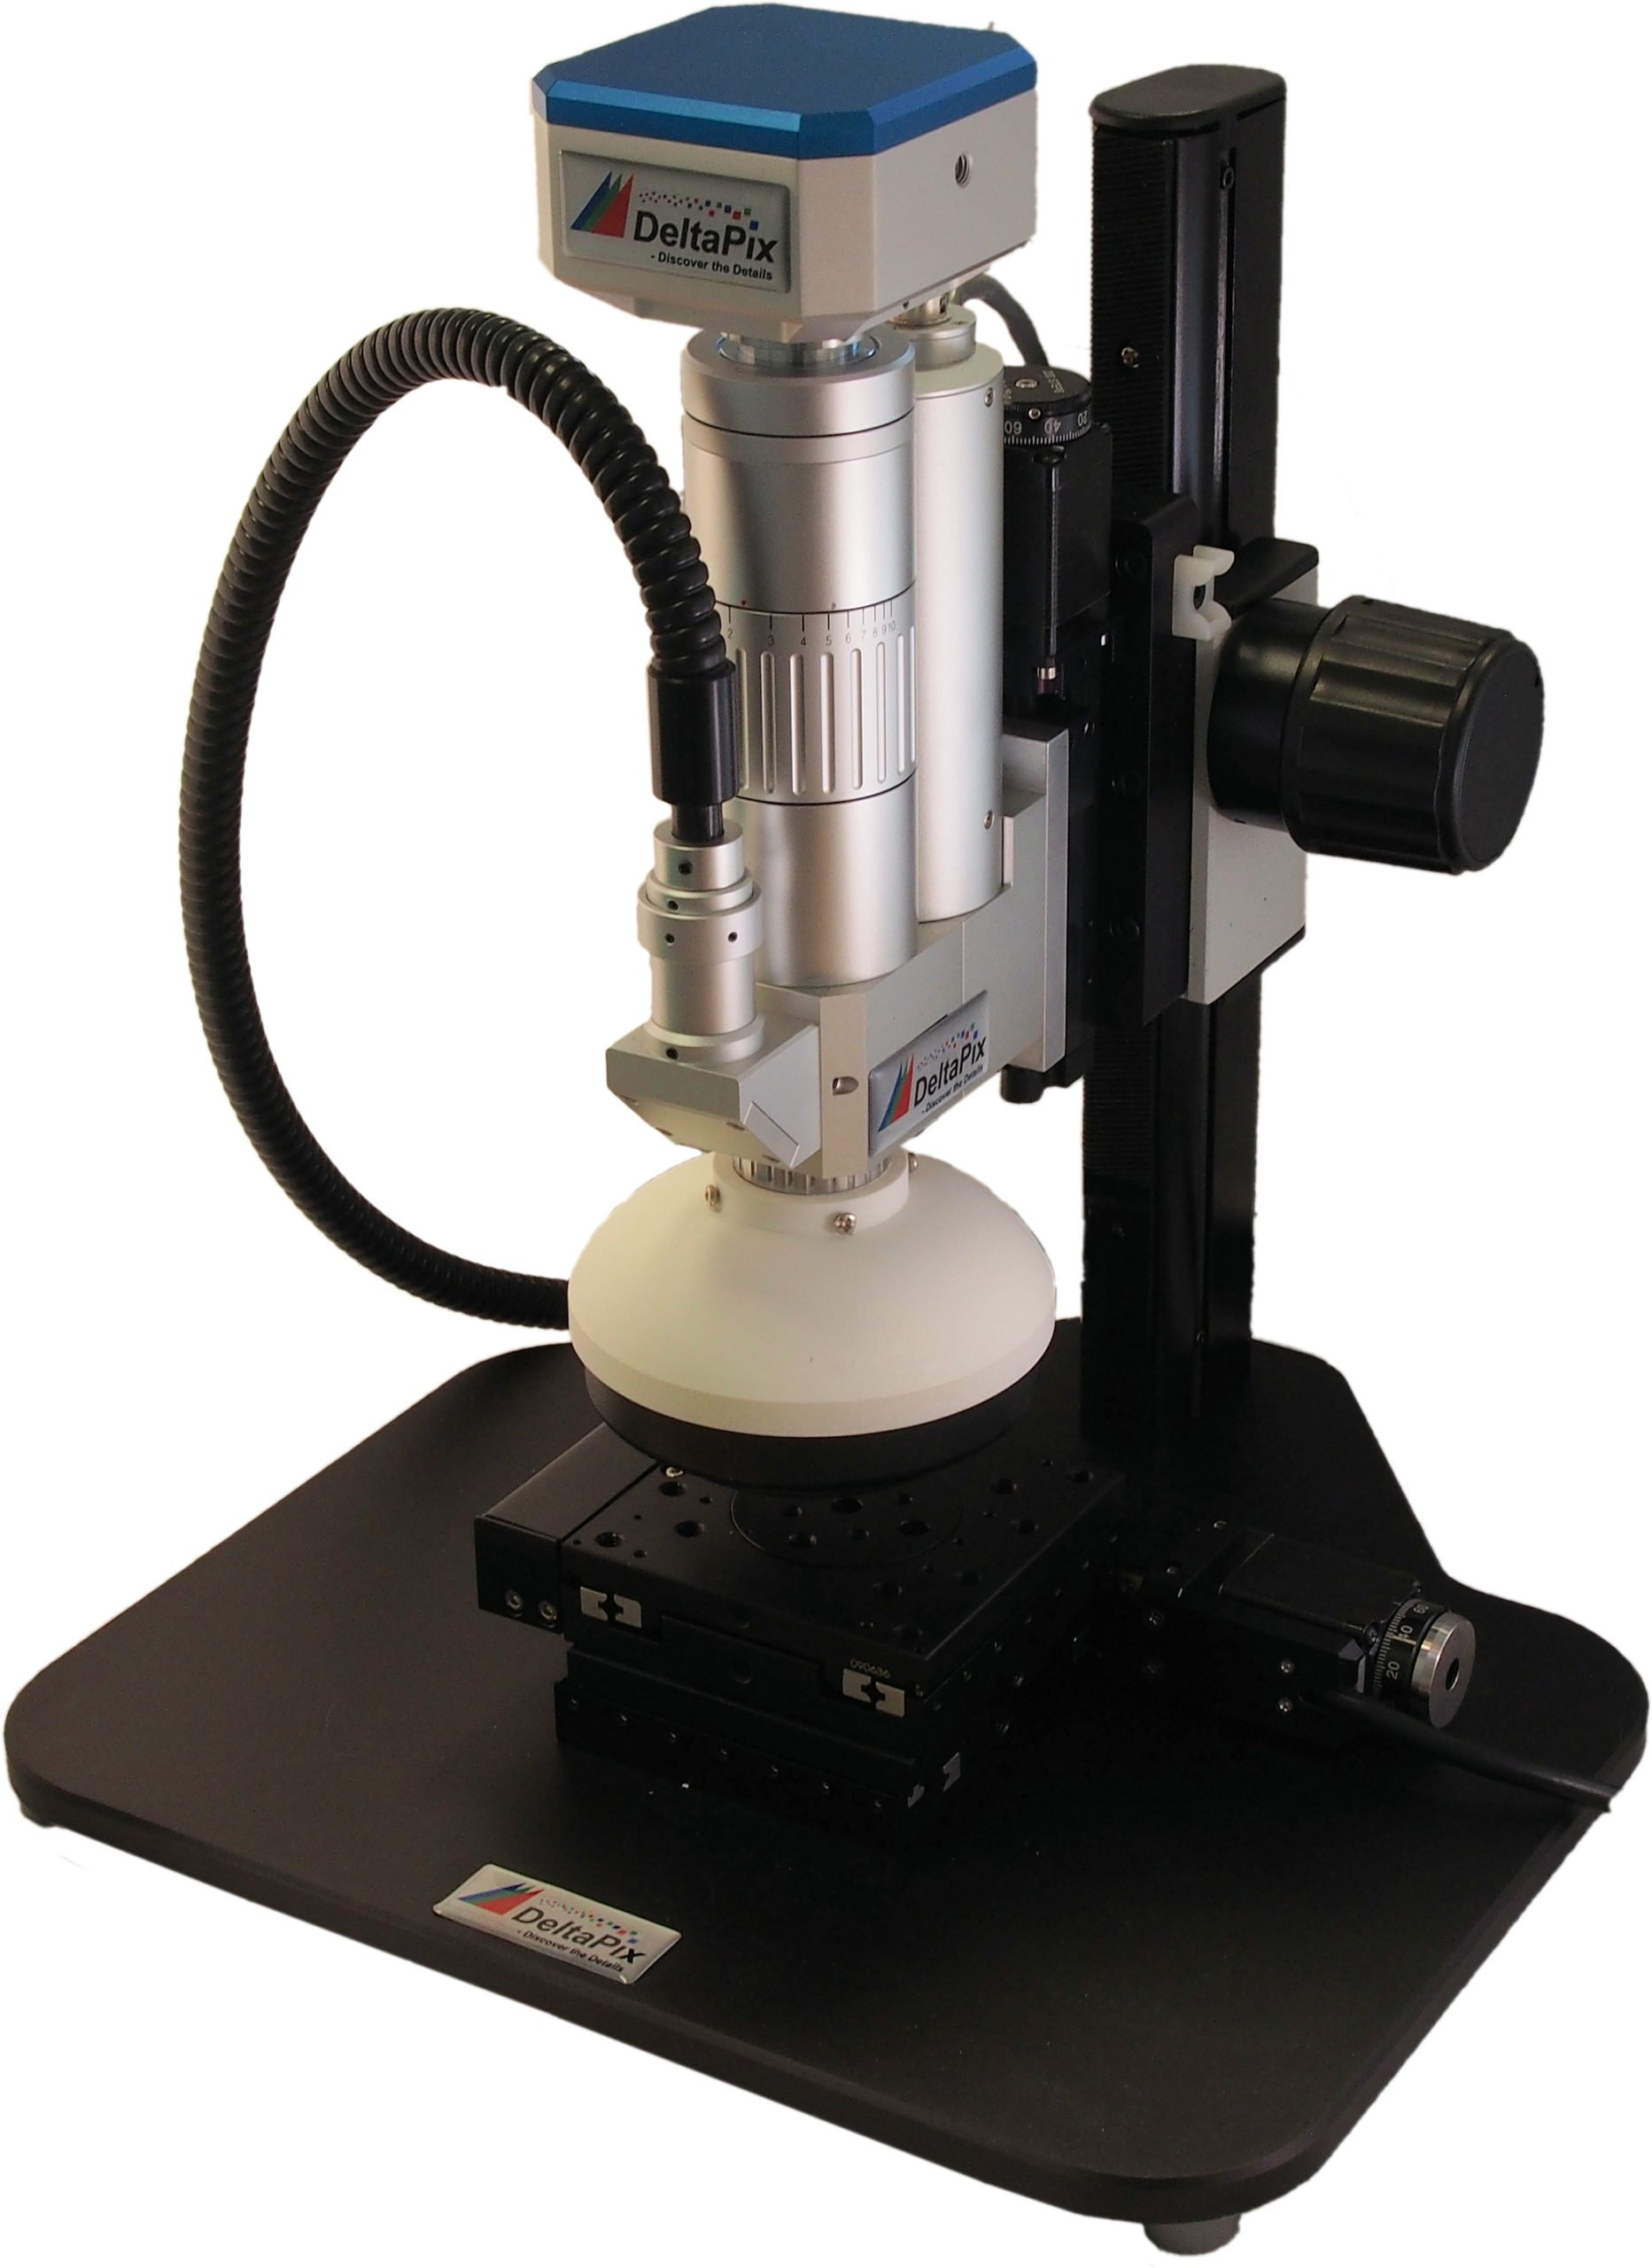 digital microscope small version